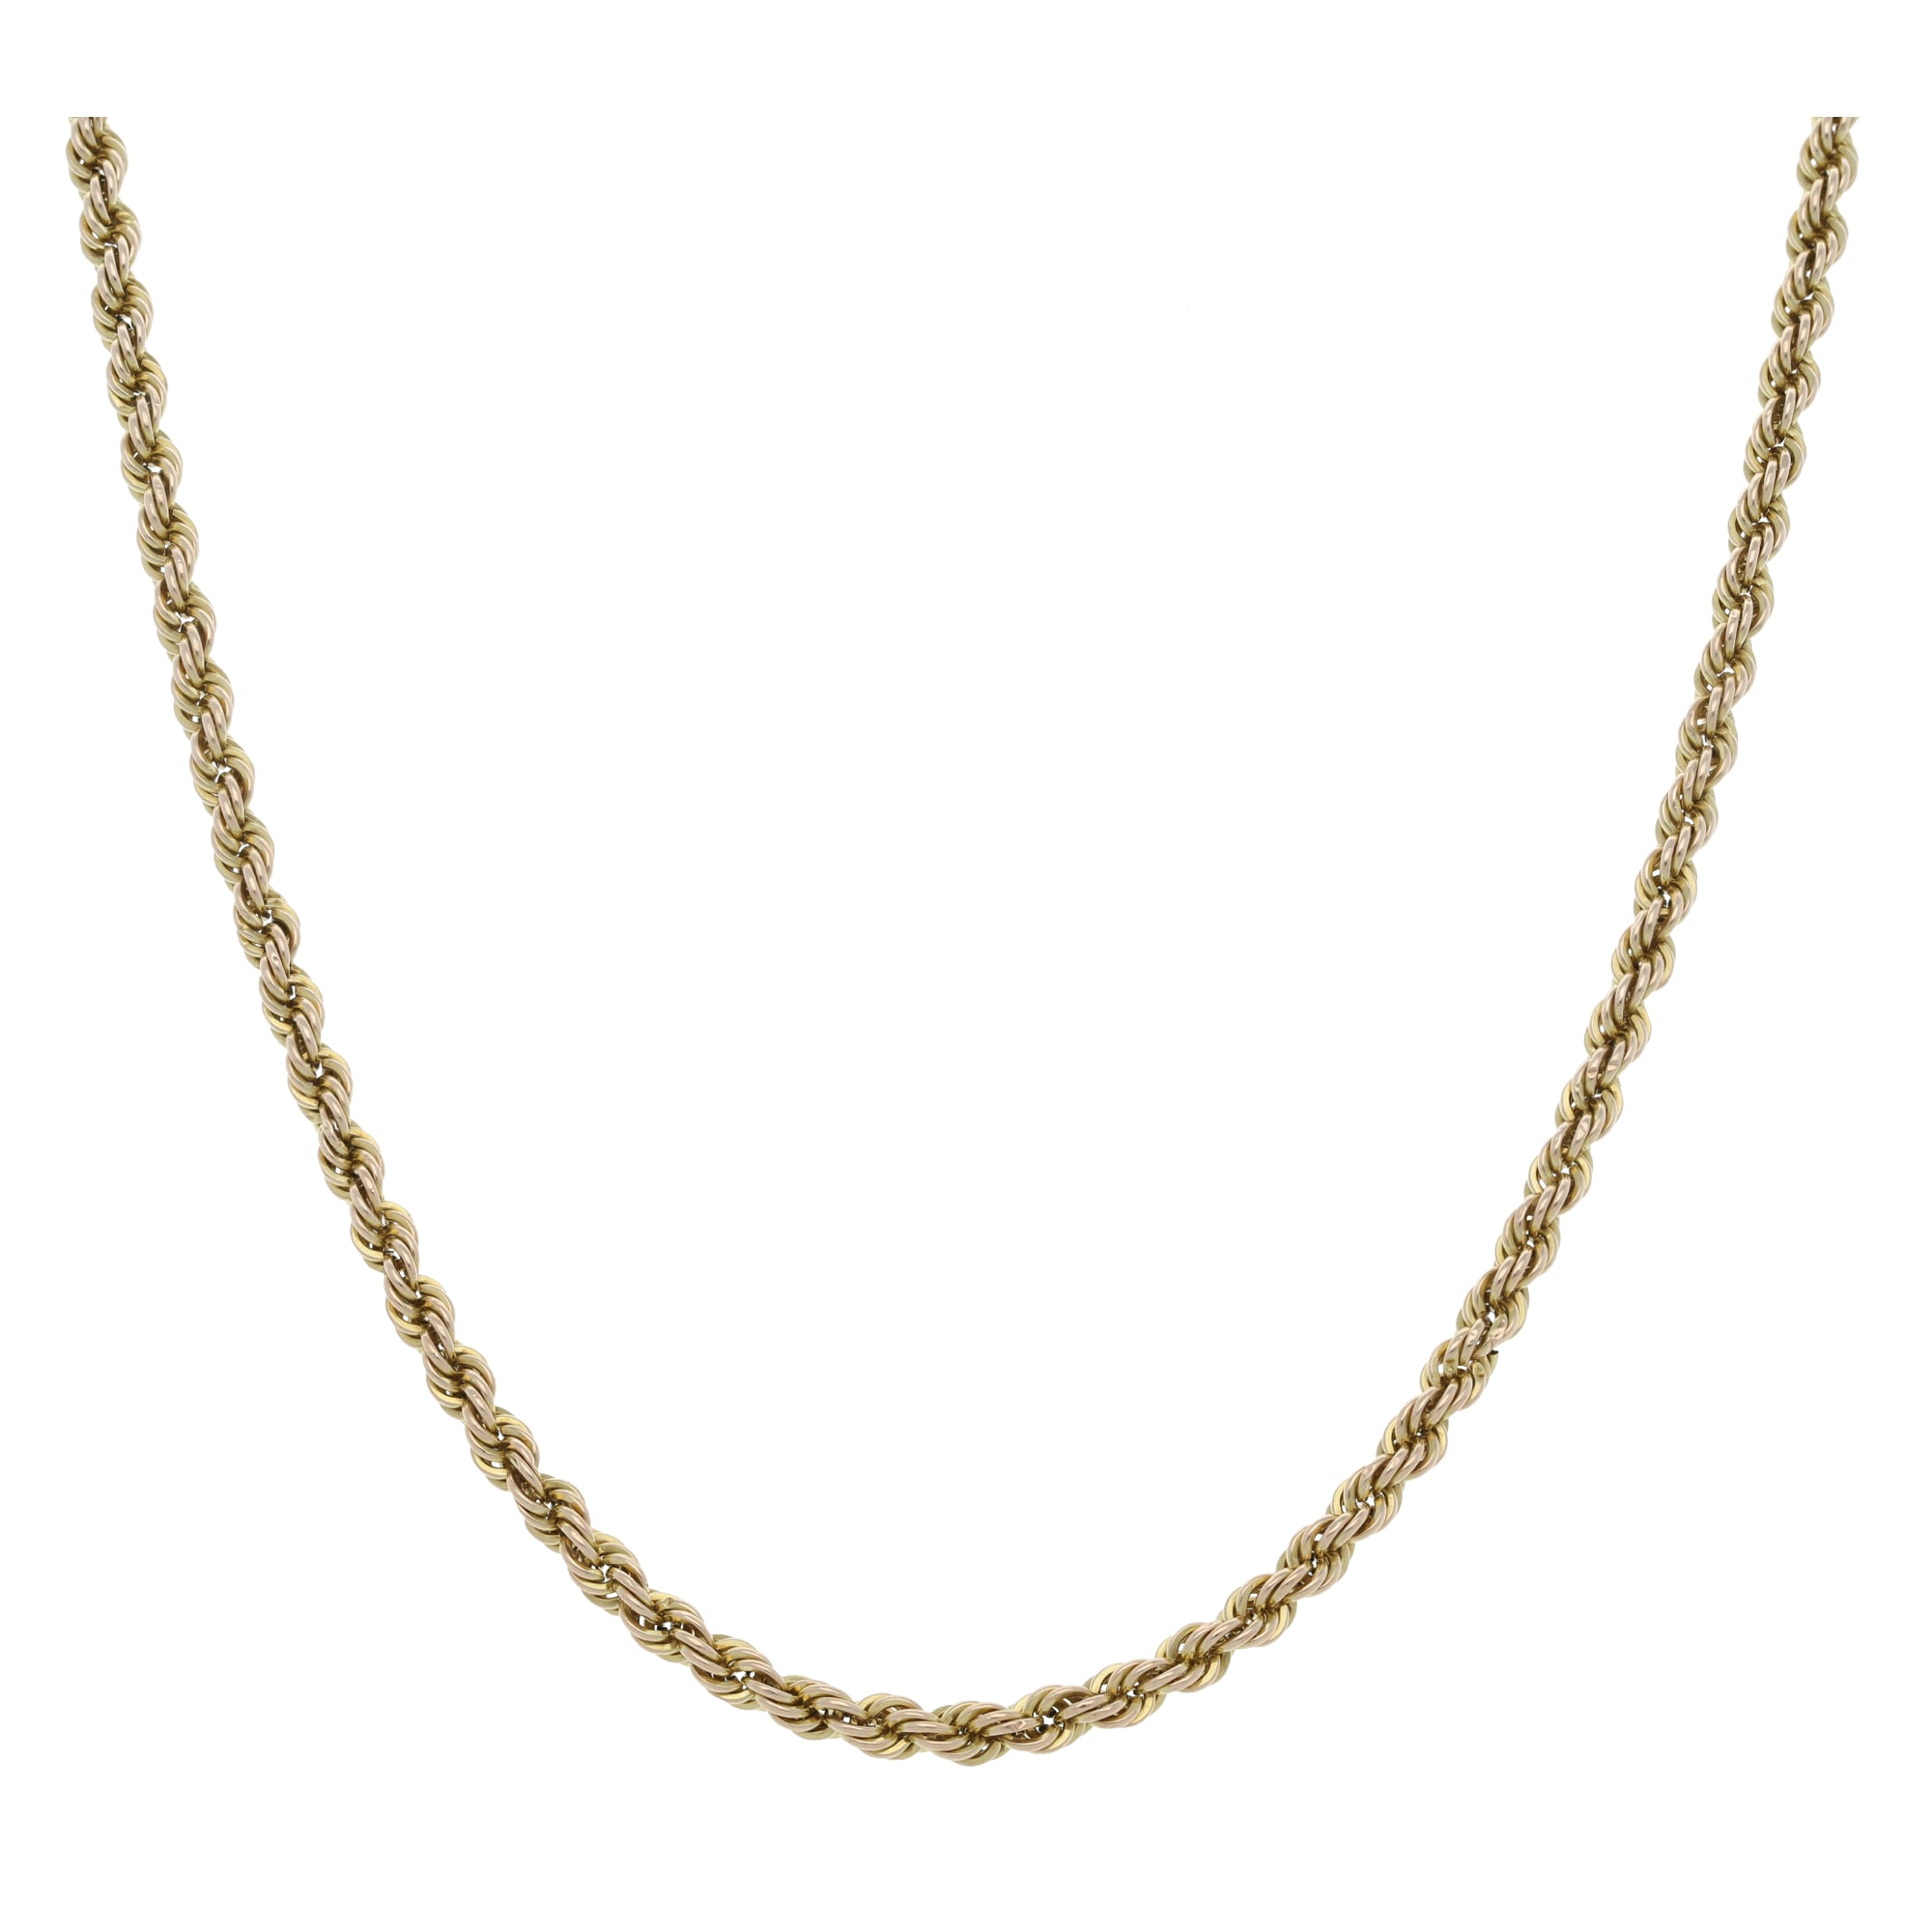 9ct Gold Ladies Rope Chain 20